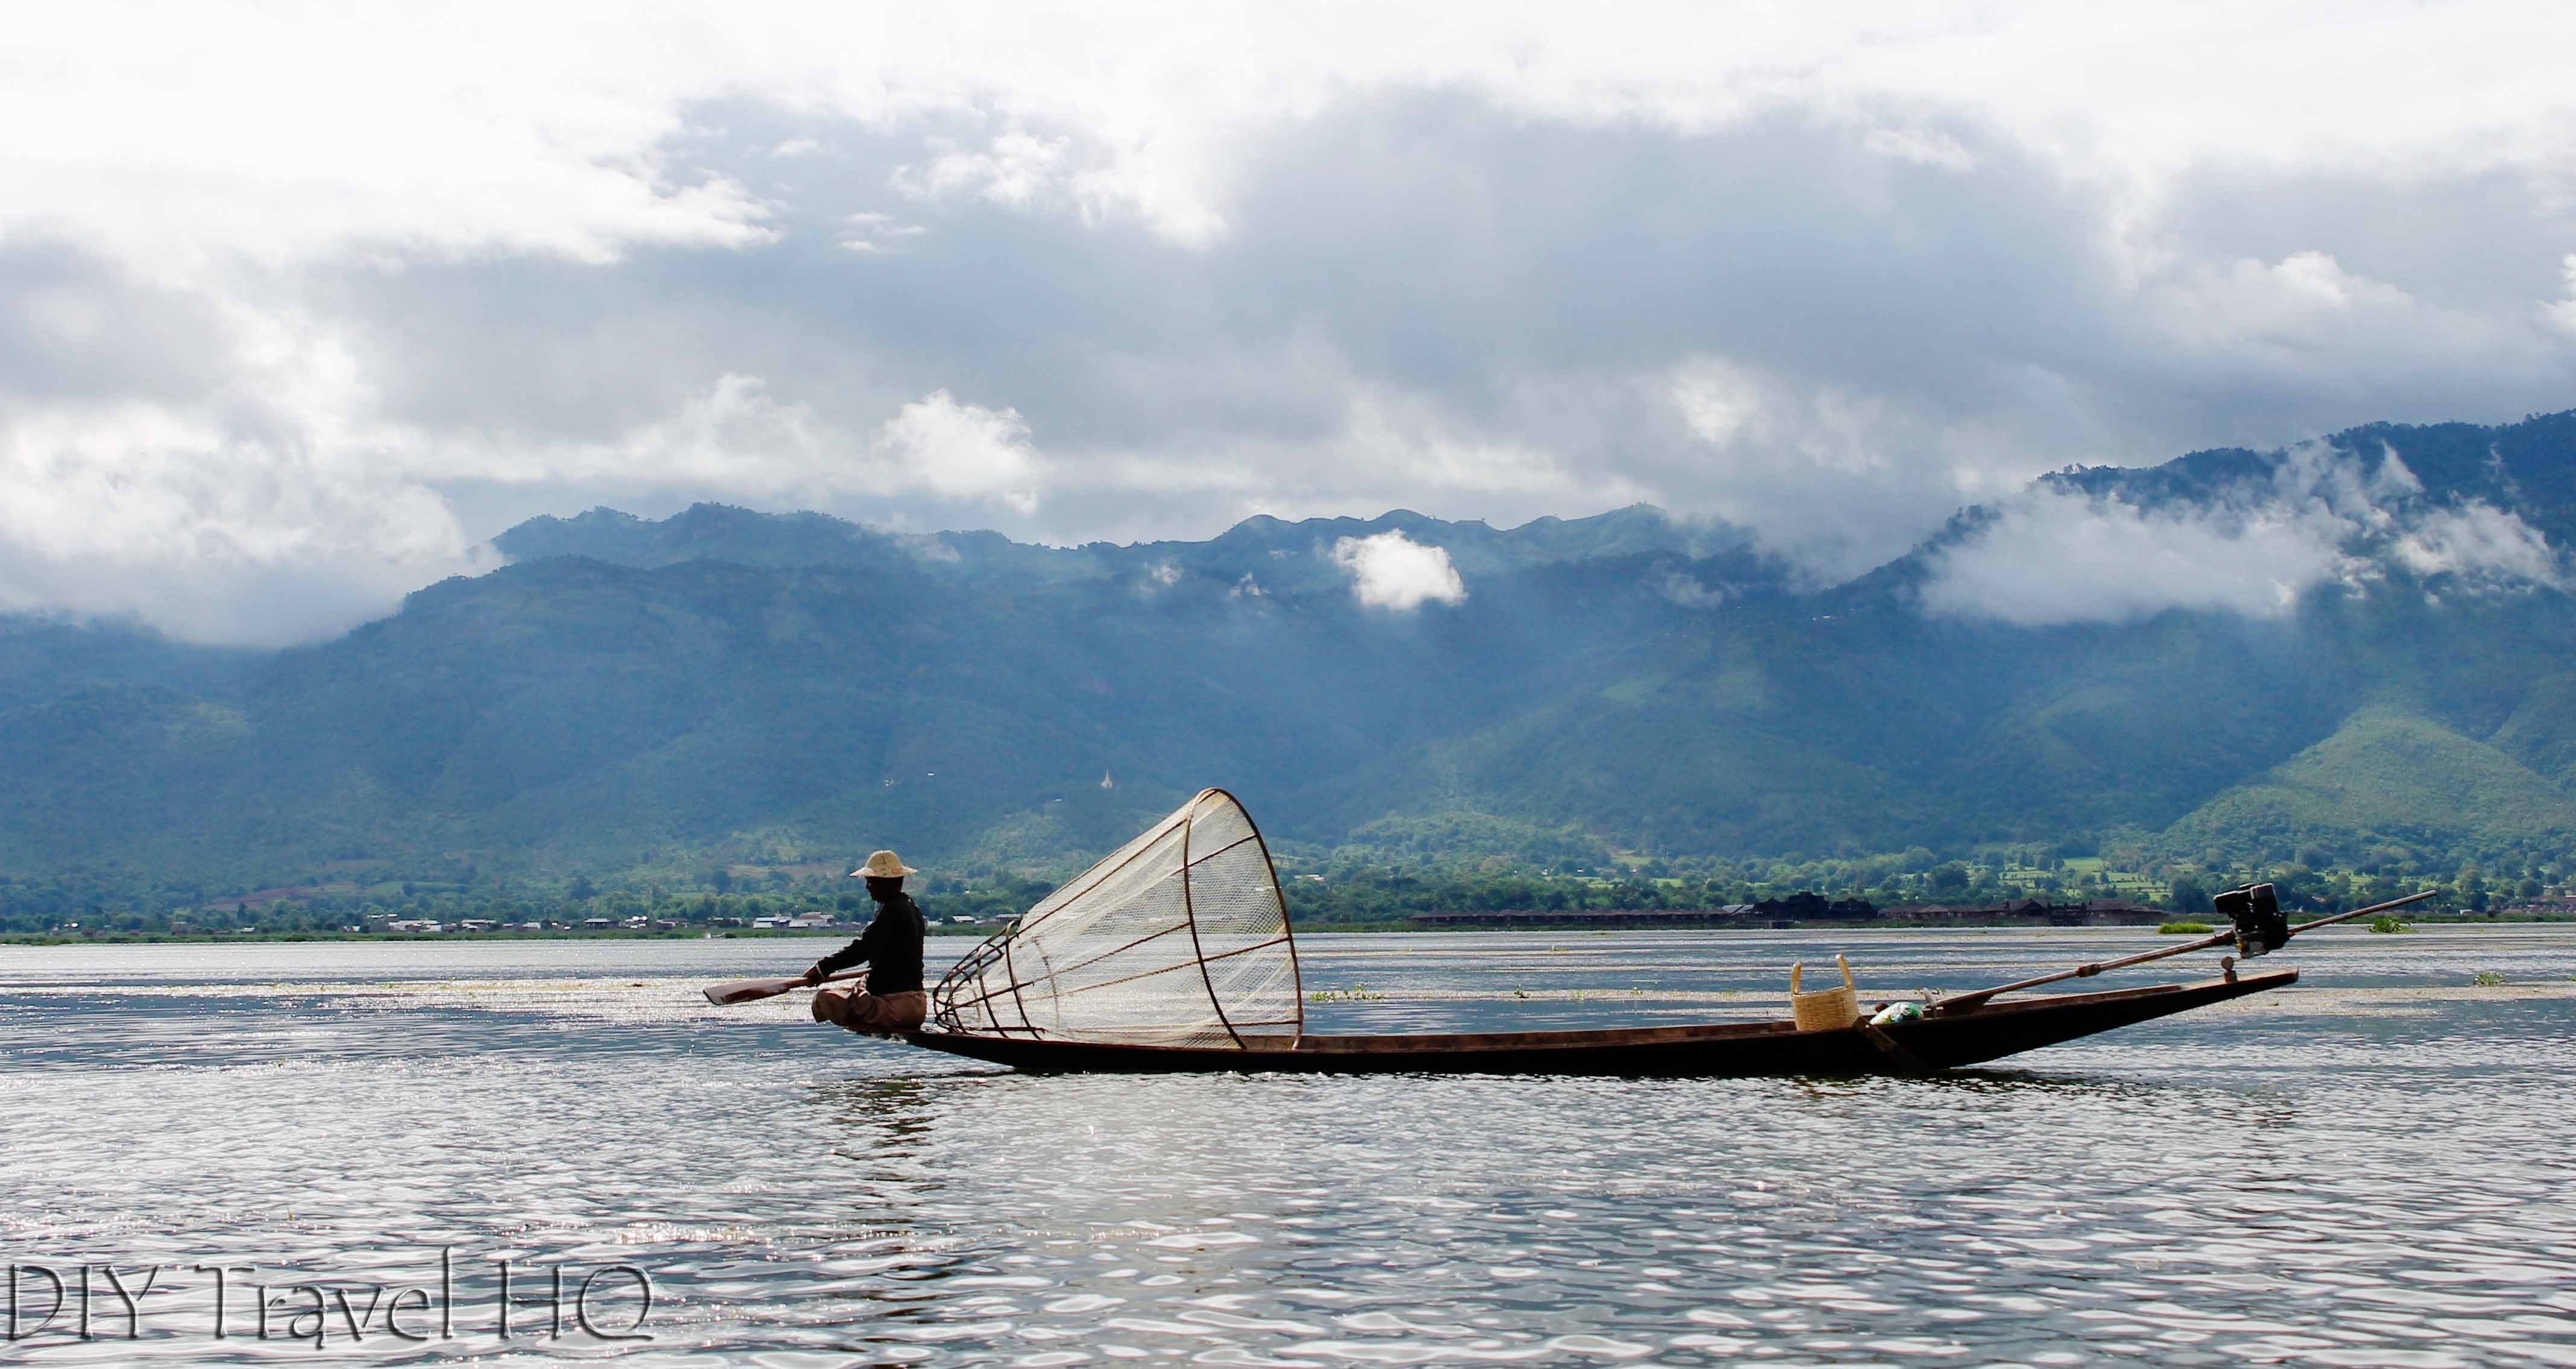 Perfect Longtail Boat Tour of Inle Lake - DIY Travel HQ